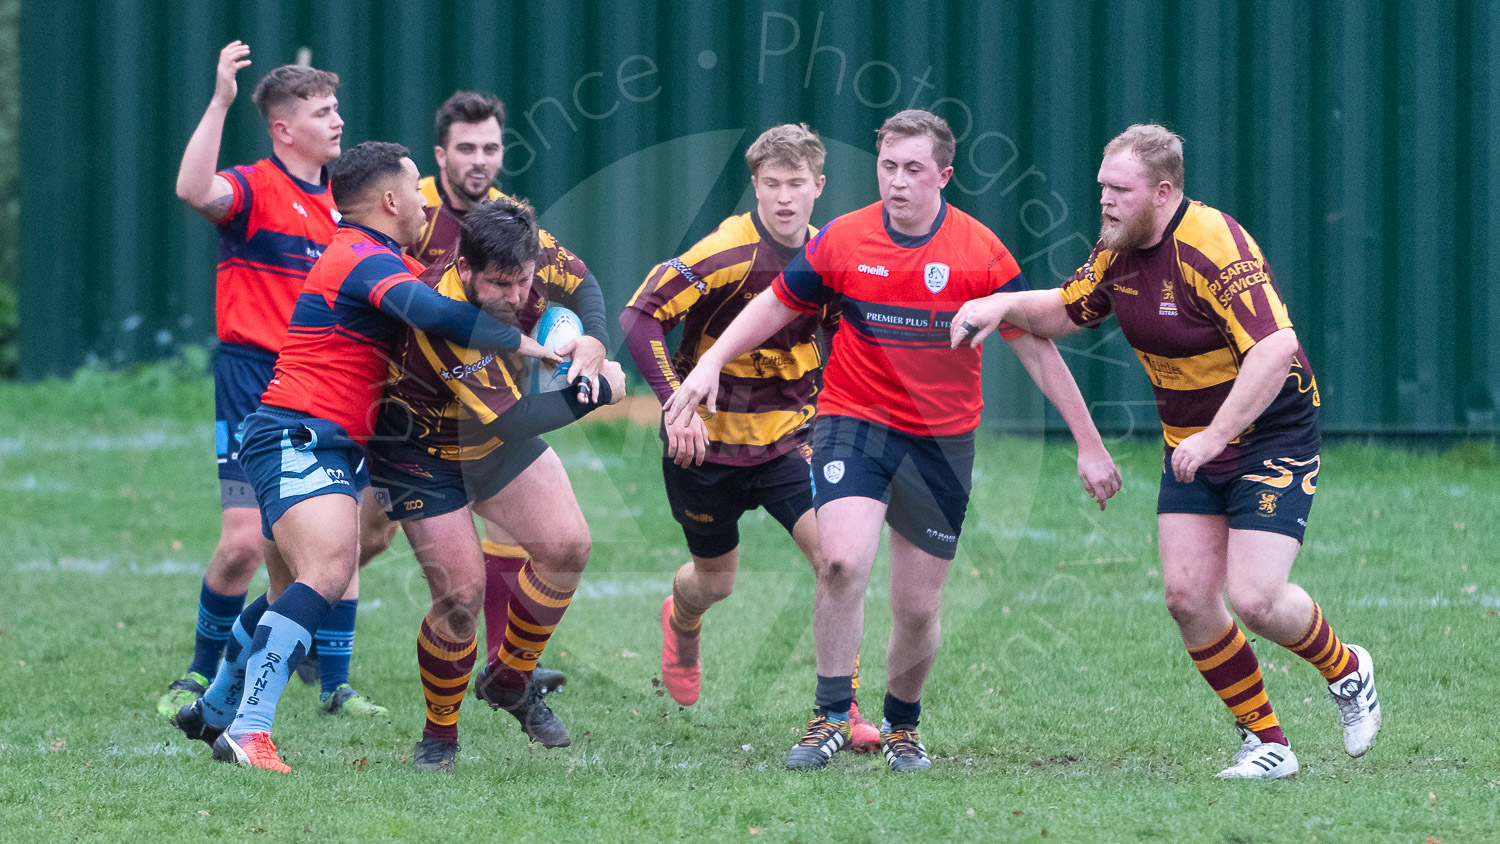 20181027 Amp Extras vs St Neots 2nd XV #2279